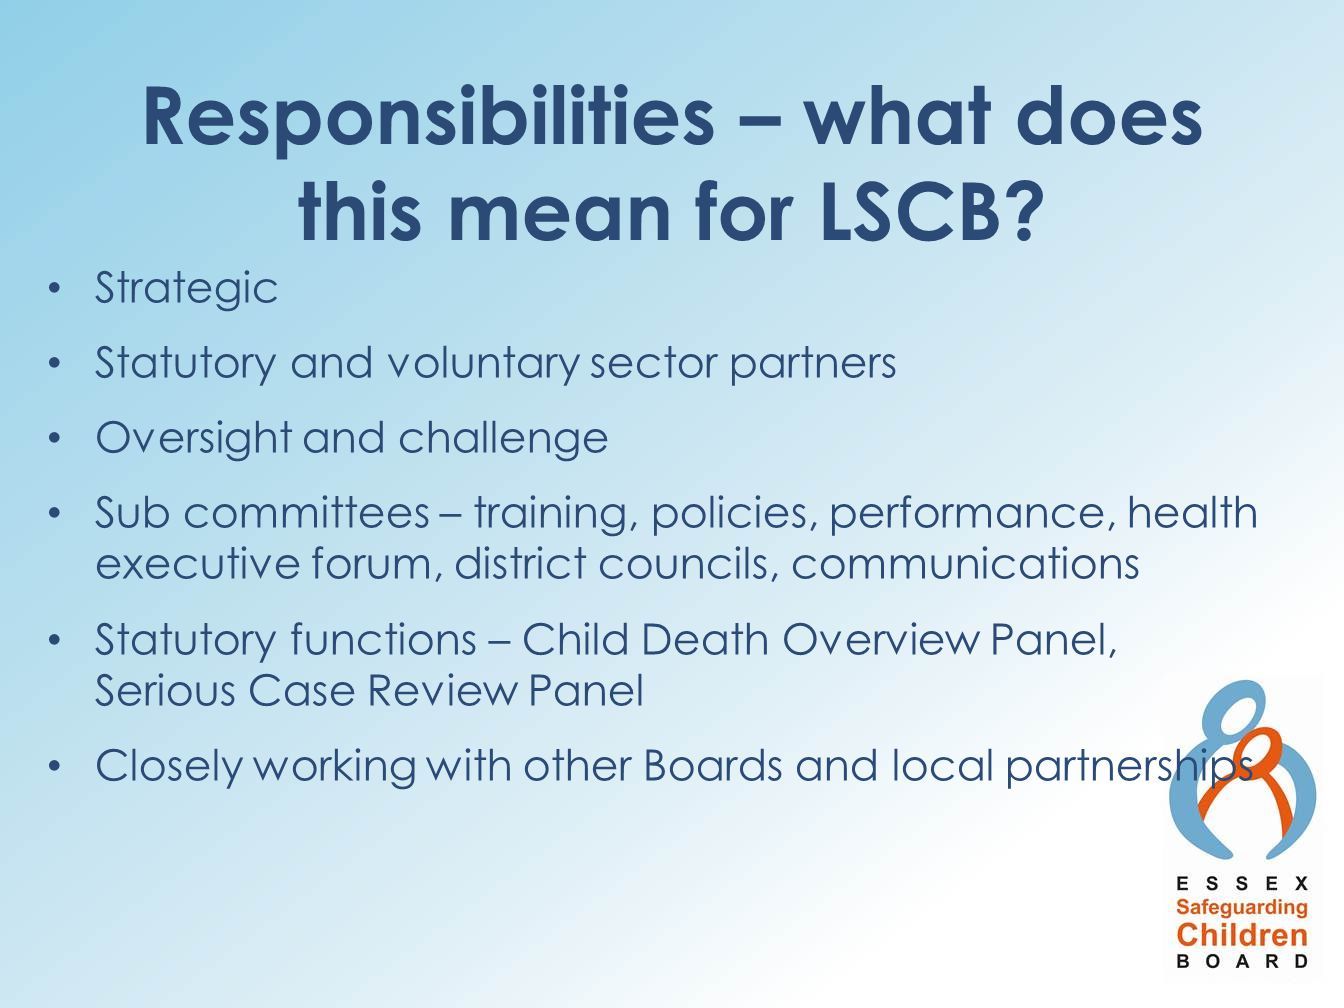 Responsibilities – what does this mean for LSCB